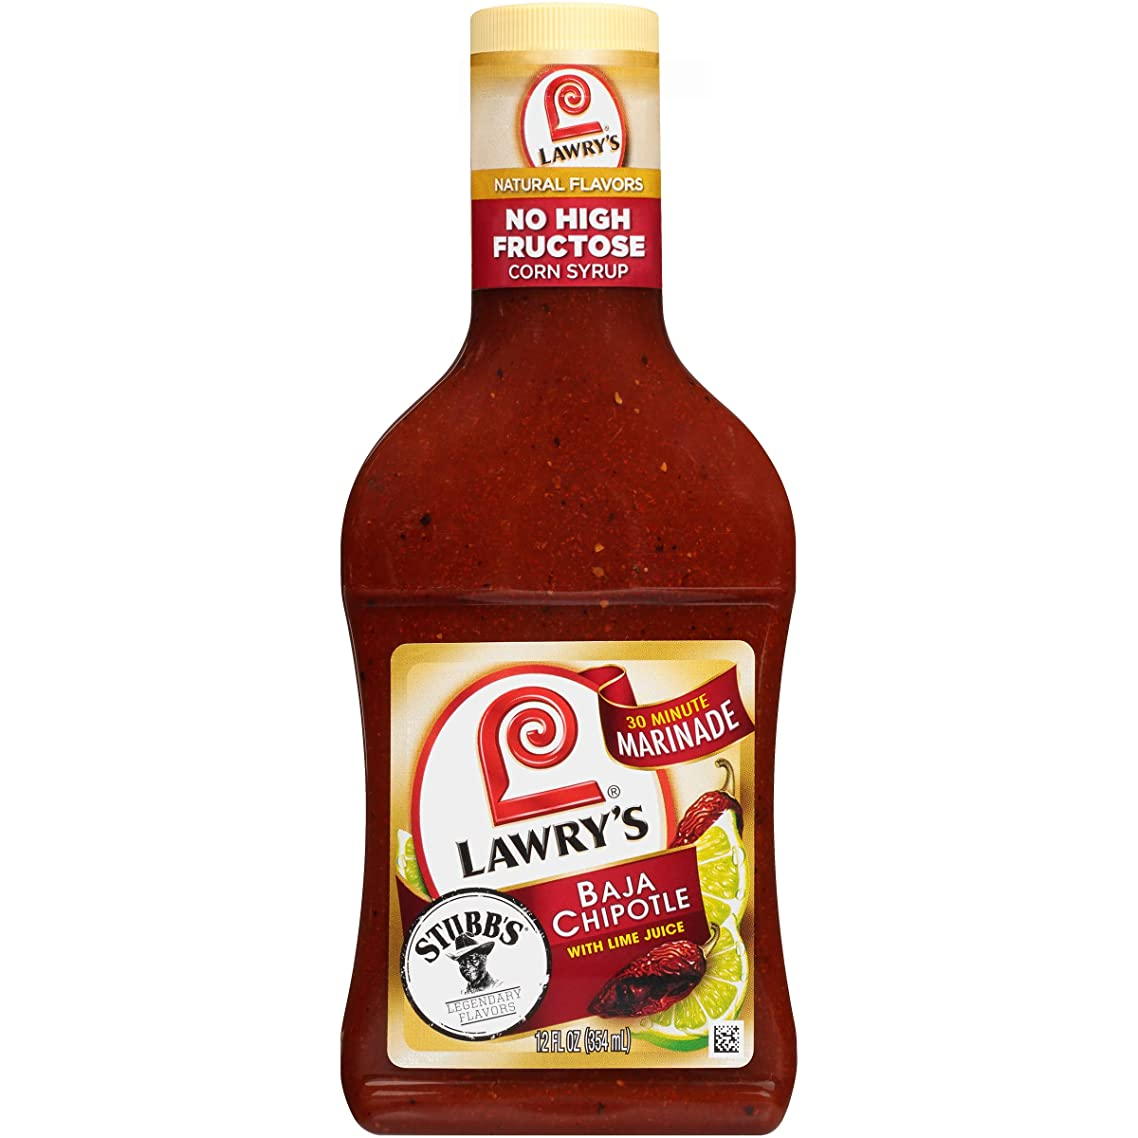 Lawry's Baja Chipotle Marinade, 12 fl oz (Pack of 6)